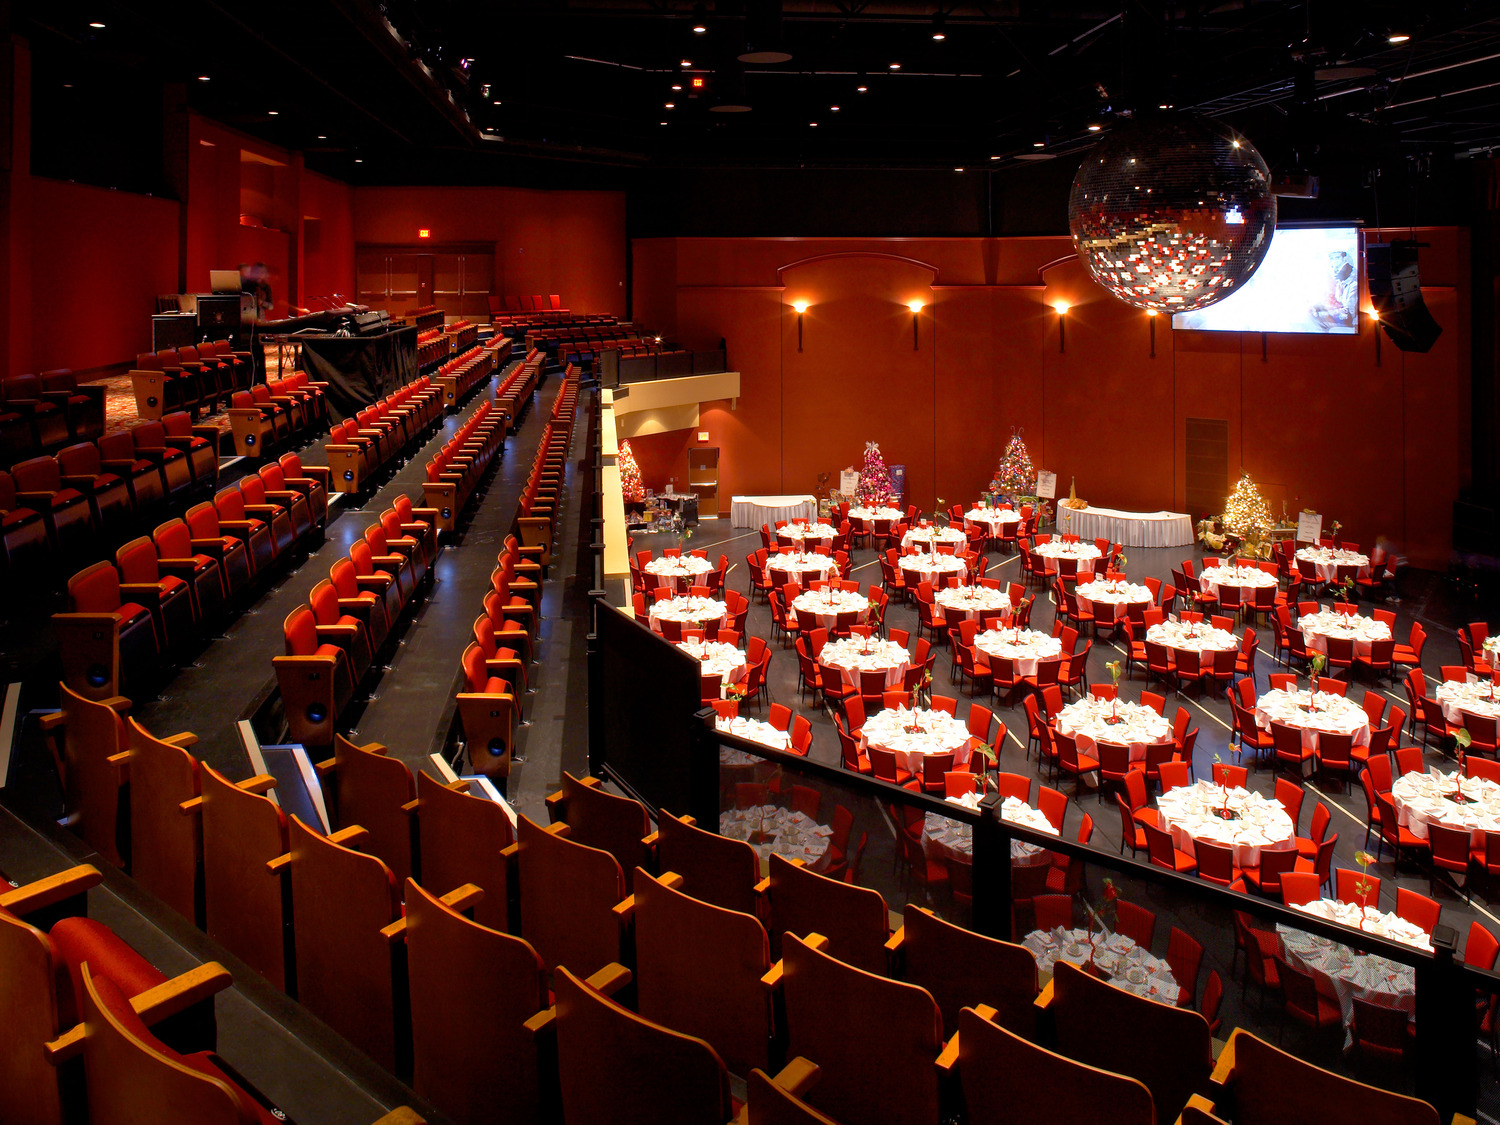 Red rock casino theaters ft myers casino gambling ship